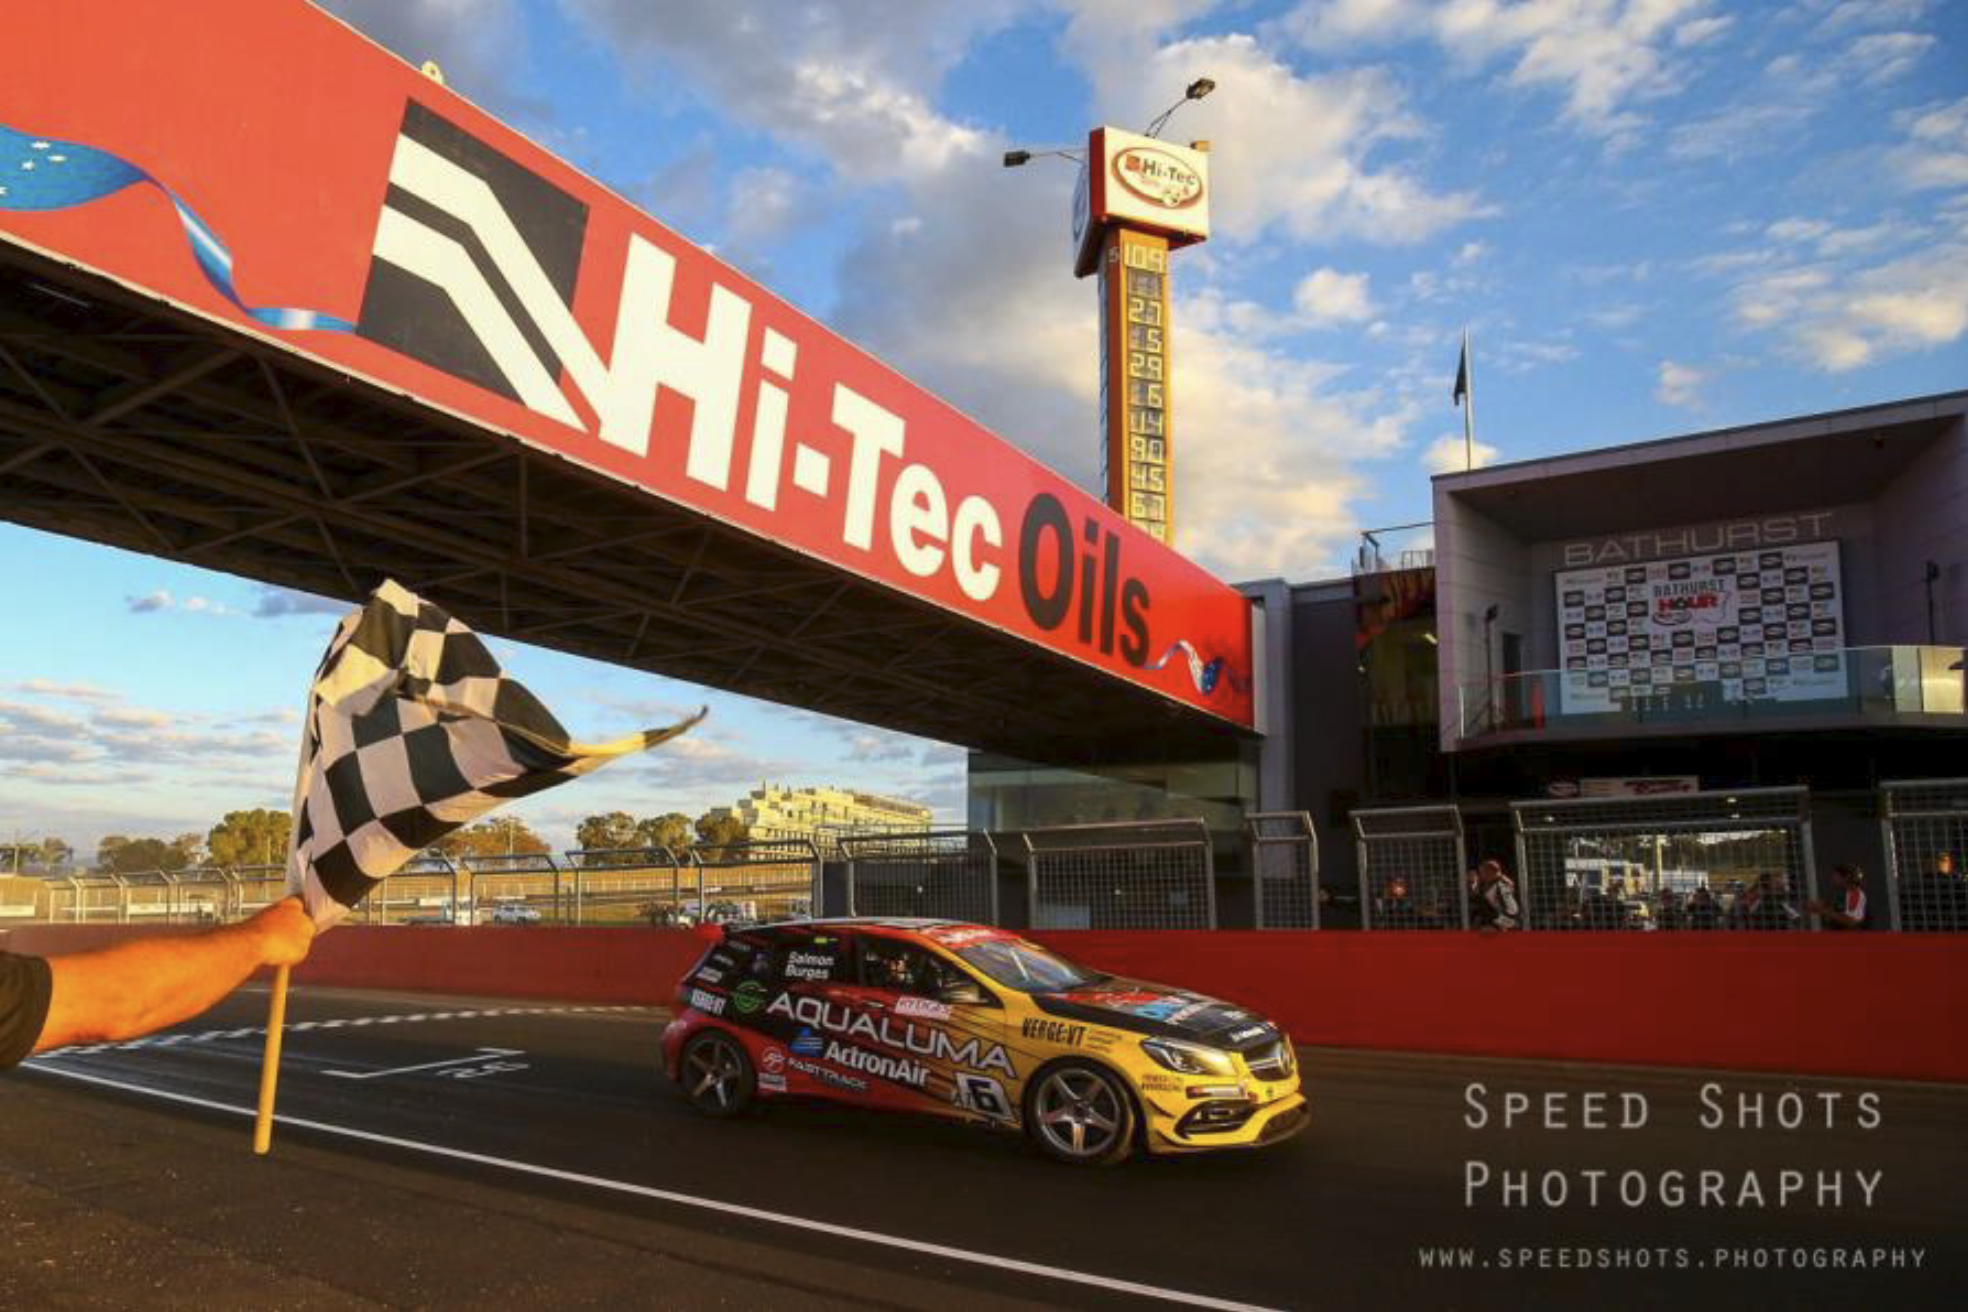 4th Outright At The Bathurst 6 Hour - Race Wrap Up